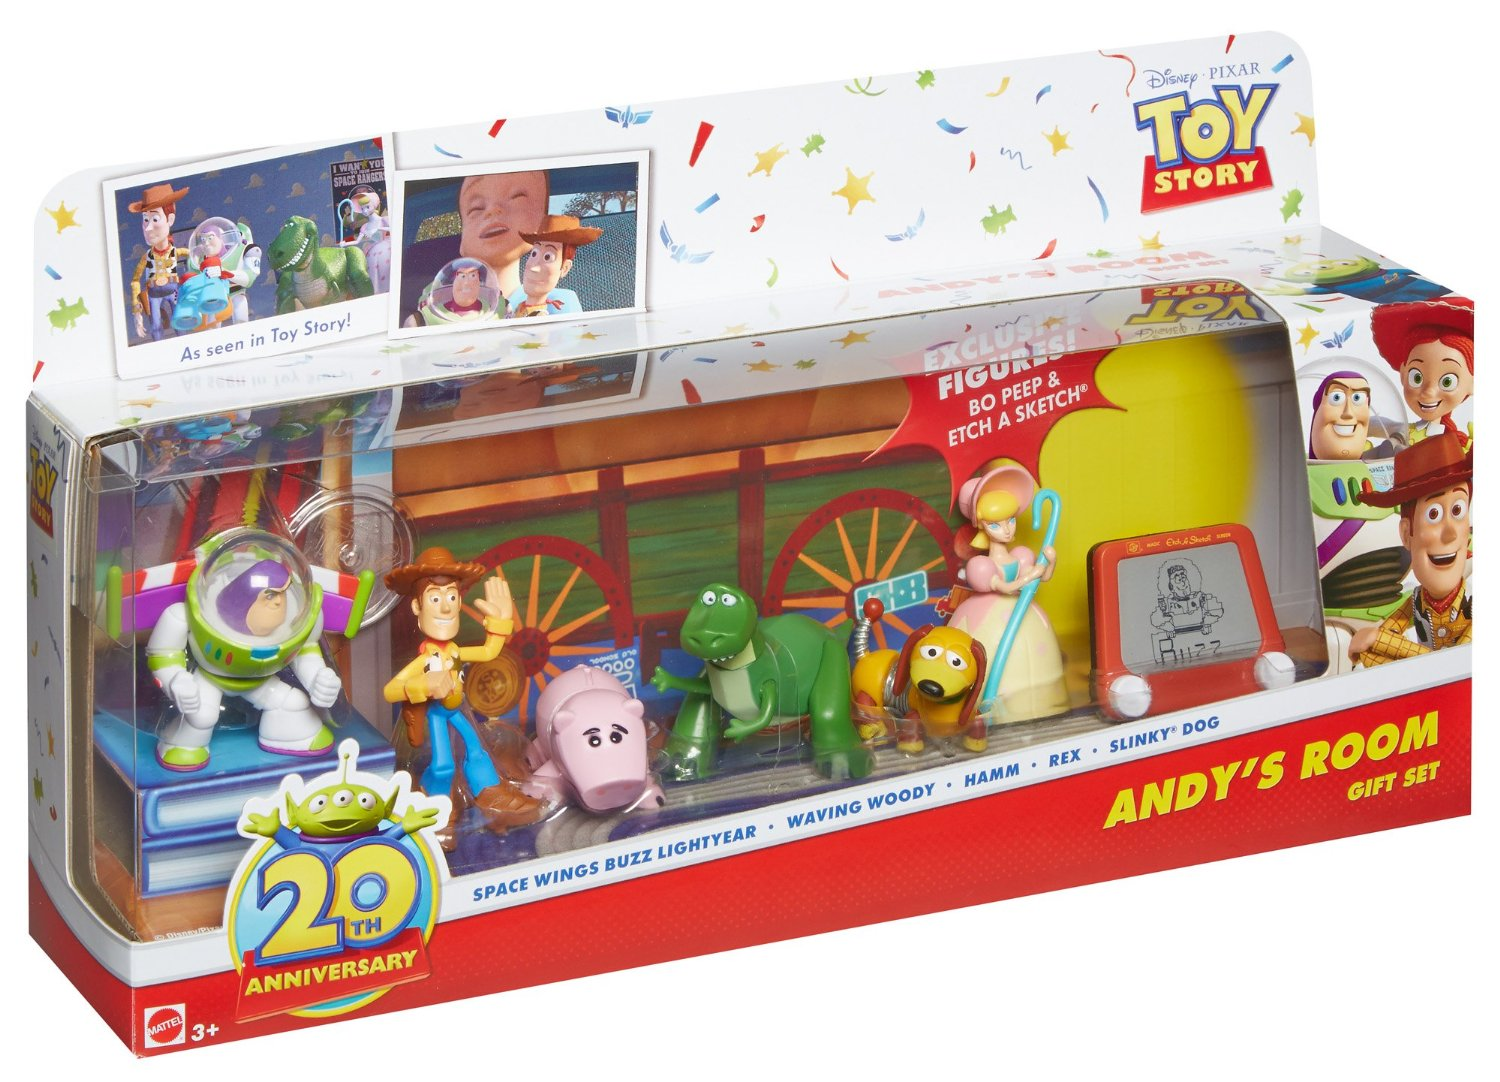 Toy Story - Andy's Room Toy Set